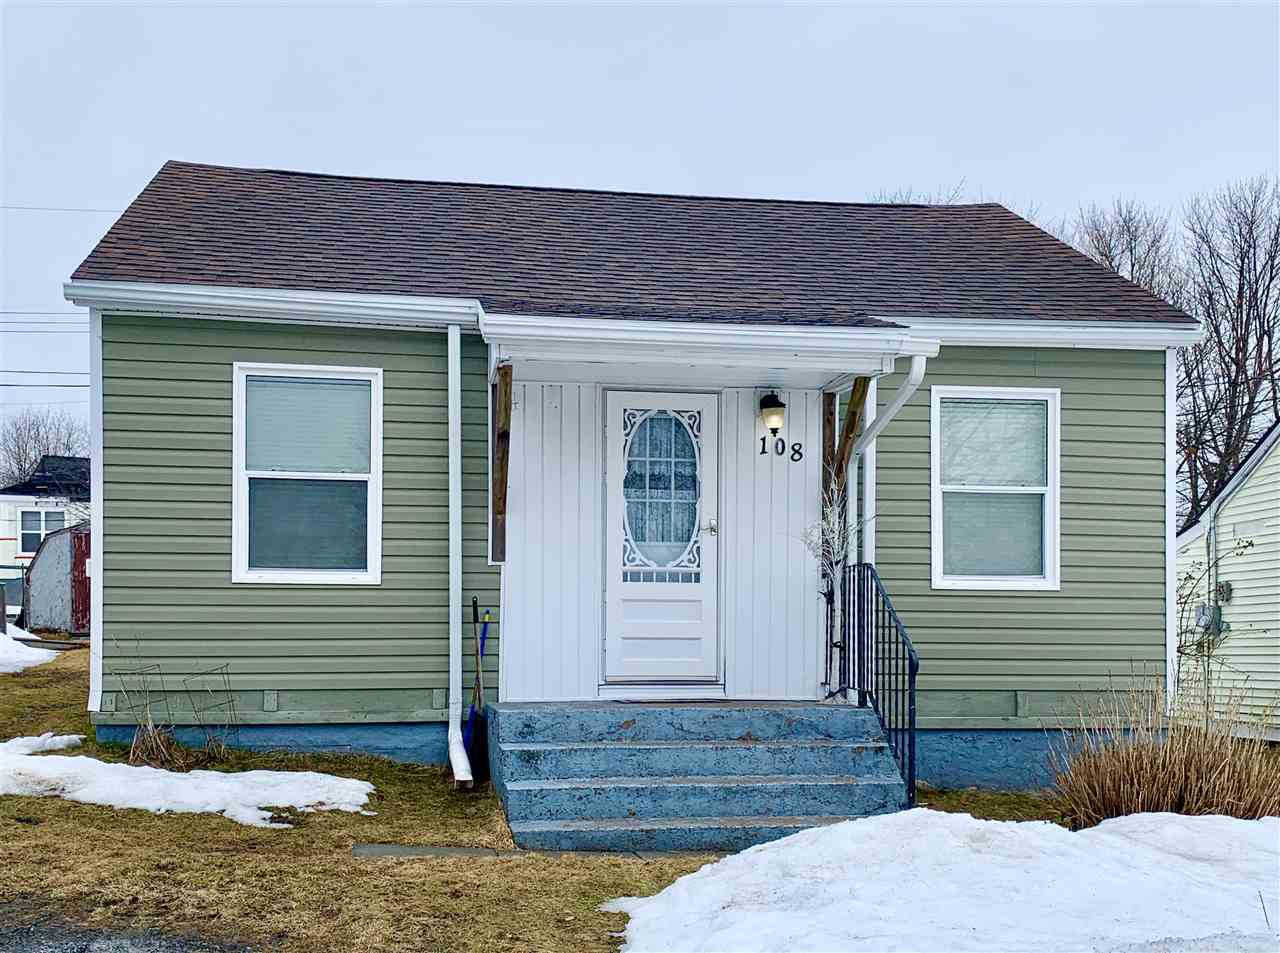 Main Photo: 108 Poplar Street in Pictou: 107-Trenton,Westville,Pictou Residential for sale (Northern Region)  : MLS®# 202004629